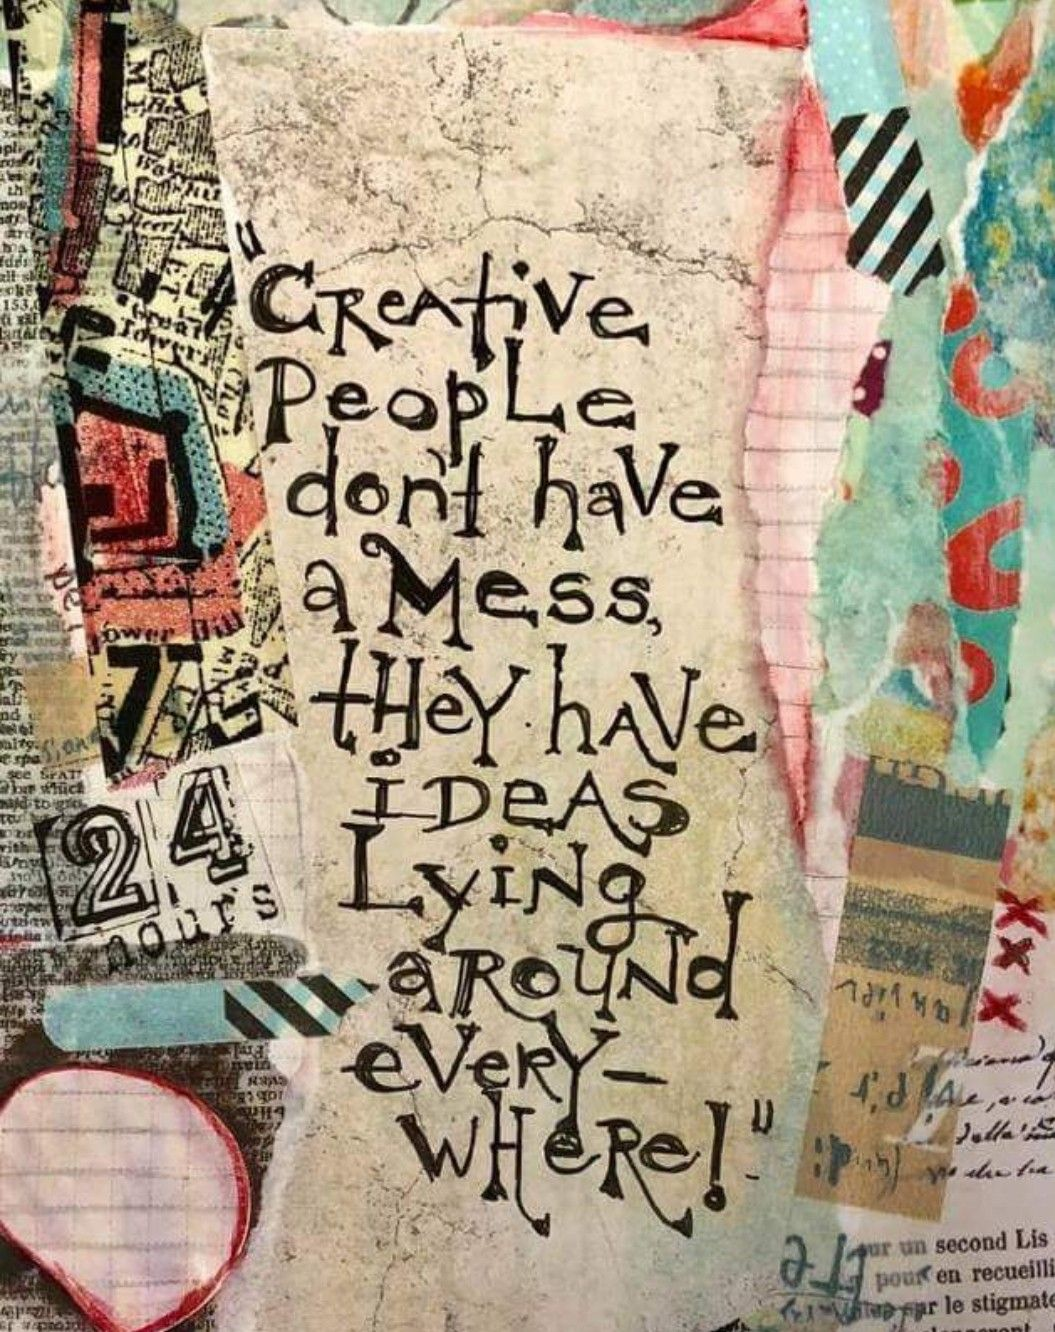 Pin By Danielle Gillmore On Quotes For Creativity Art Words Words Of Wisdom Inspirational Words